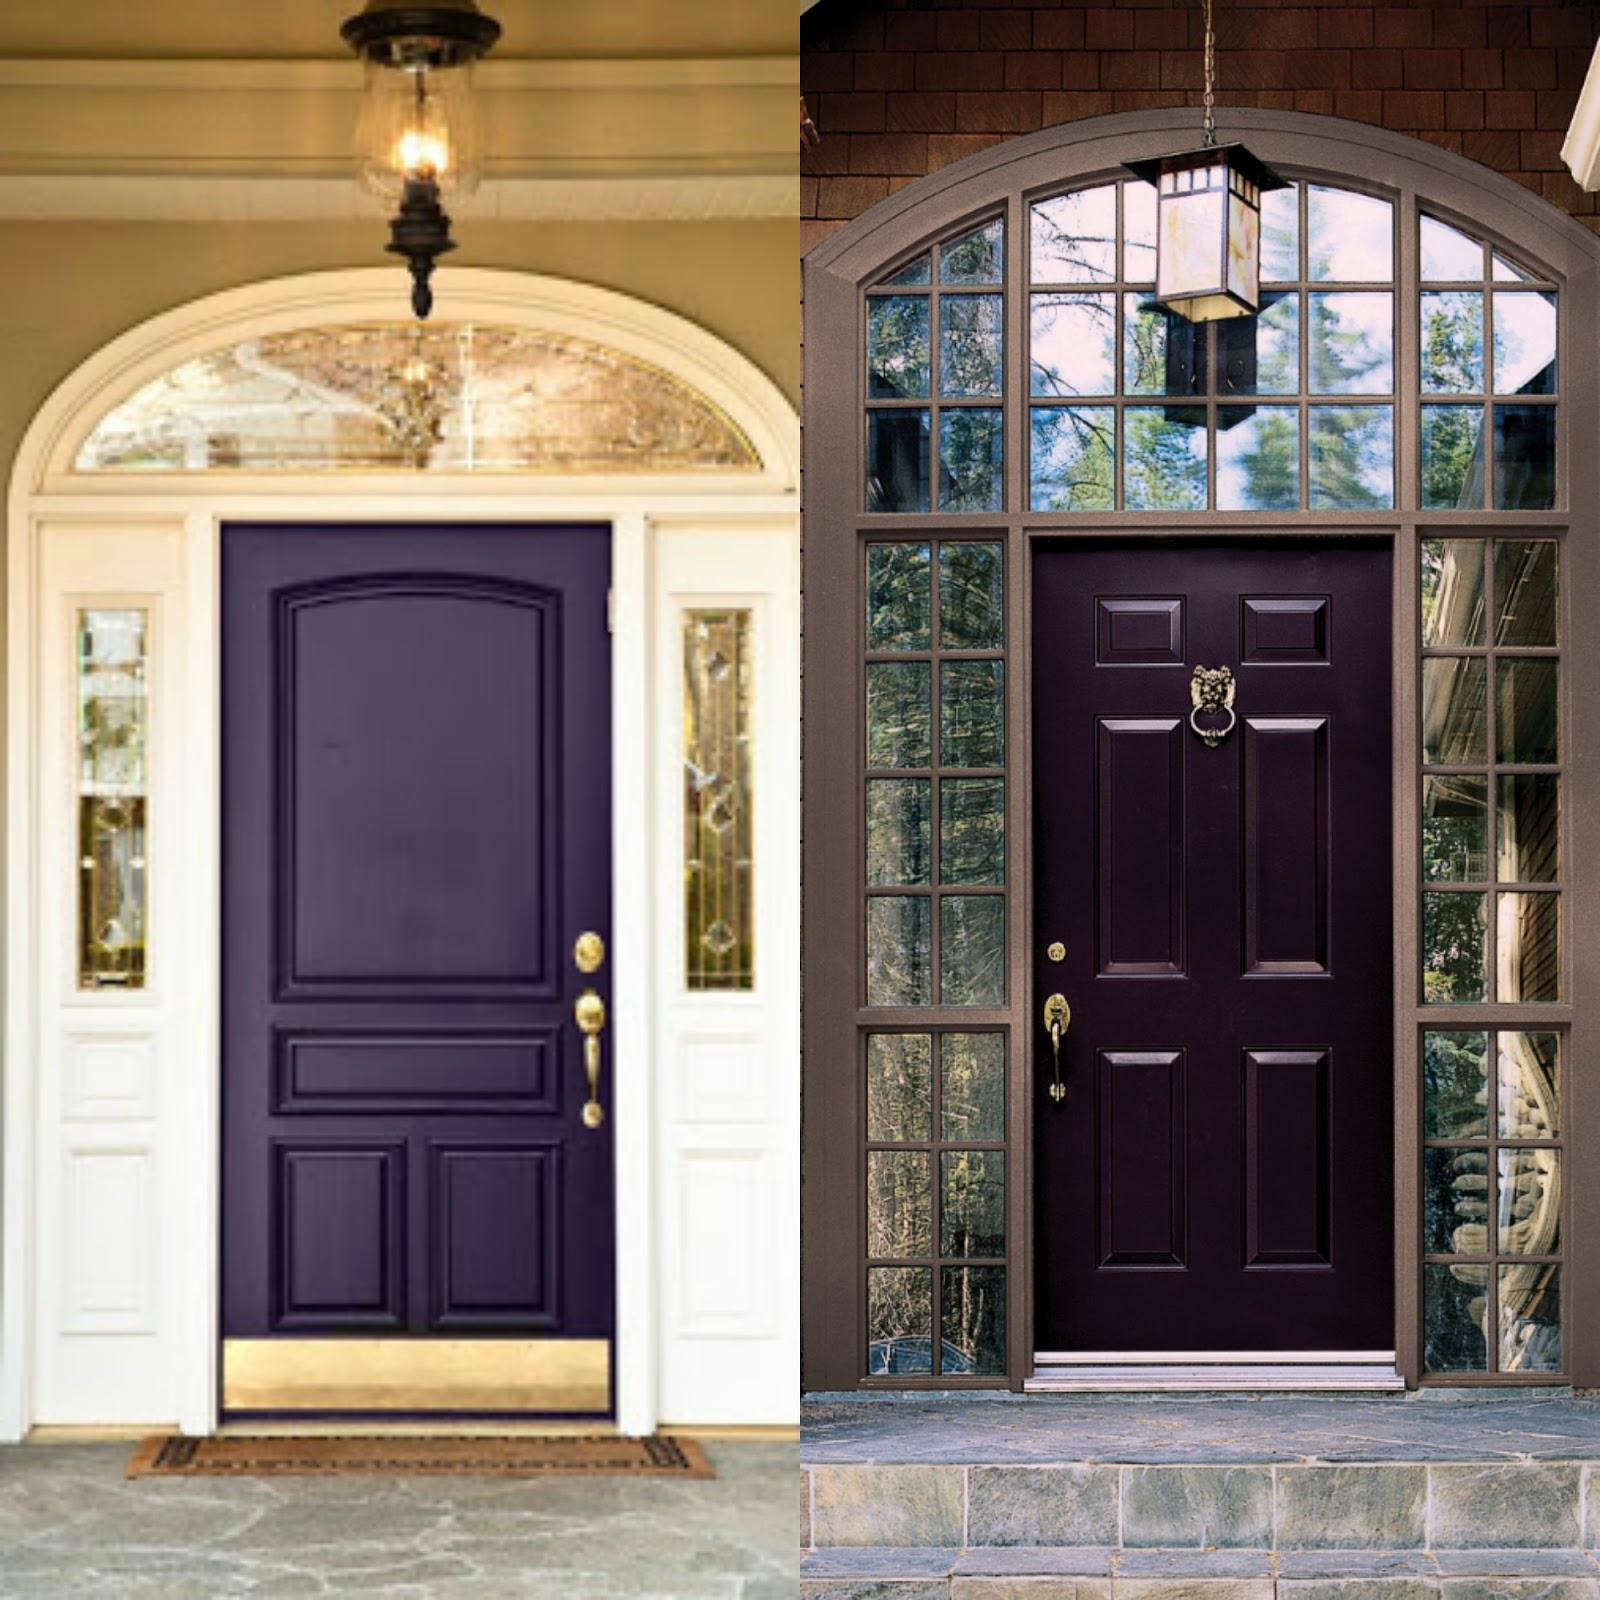 1600 #967335 Behind The Big Green Door: Painted Front Door Inspiration wallpaper Purple Front Doors 47051600